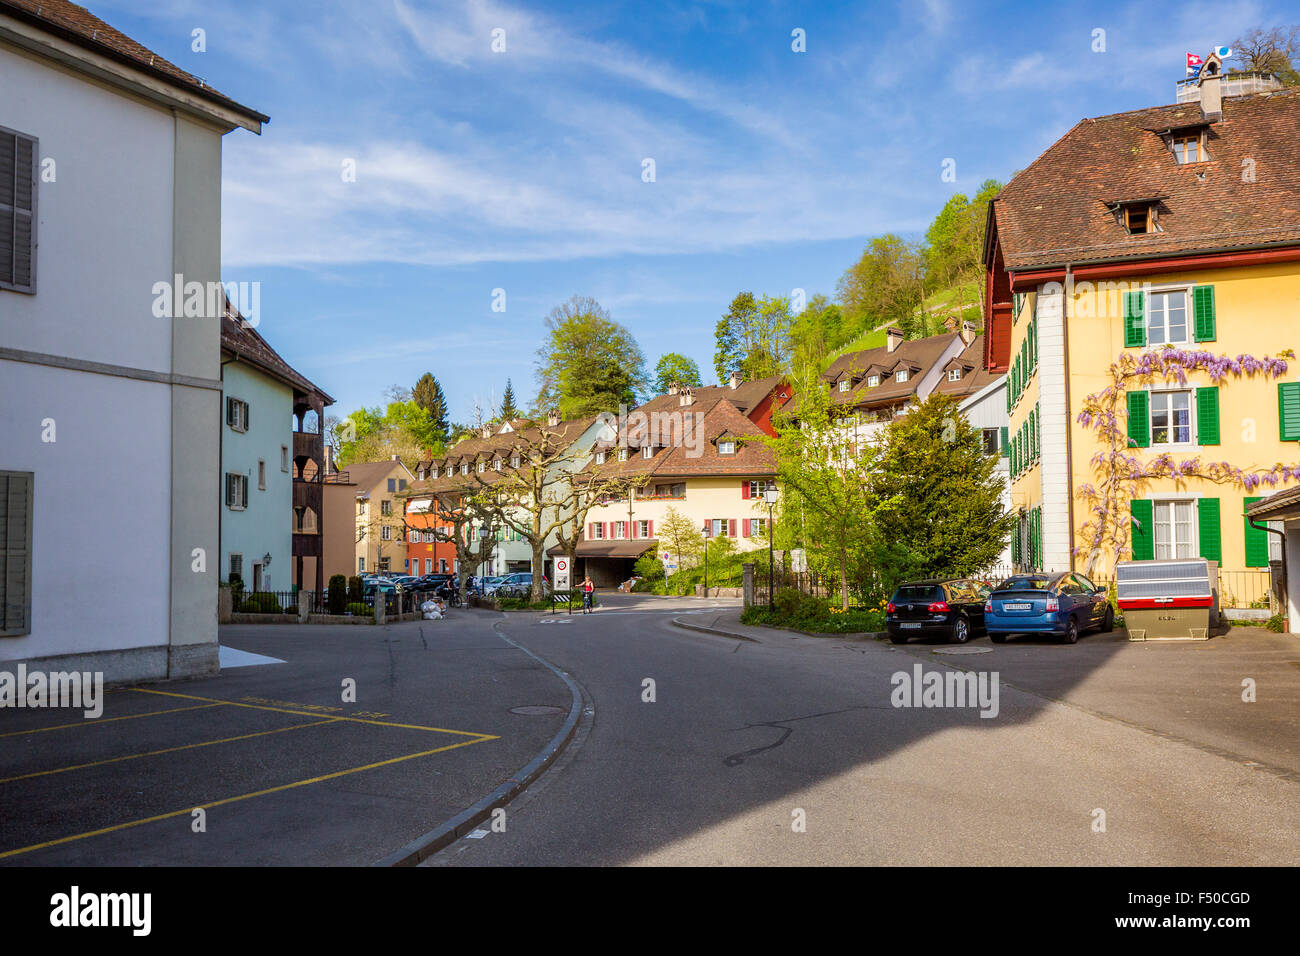 Lenzburg Canton Aargau Switzerland Stock Photo Royalty Free Image